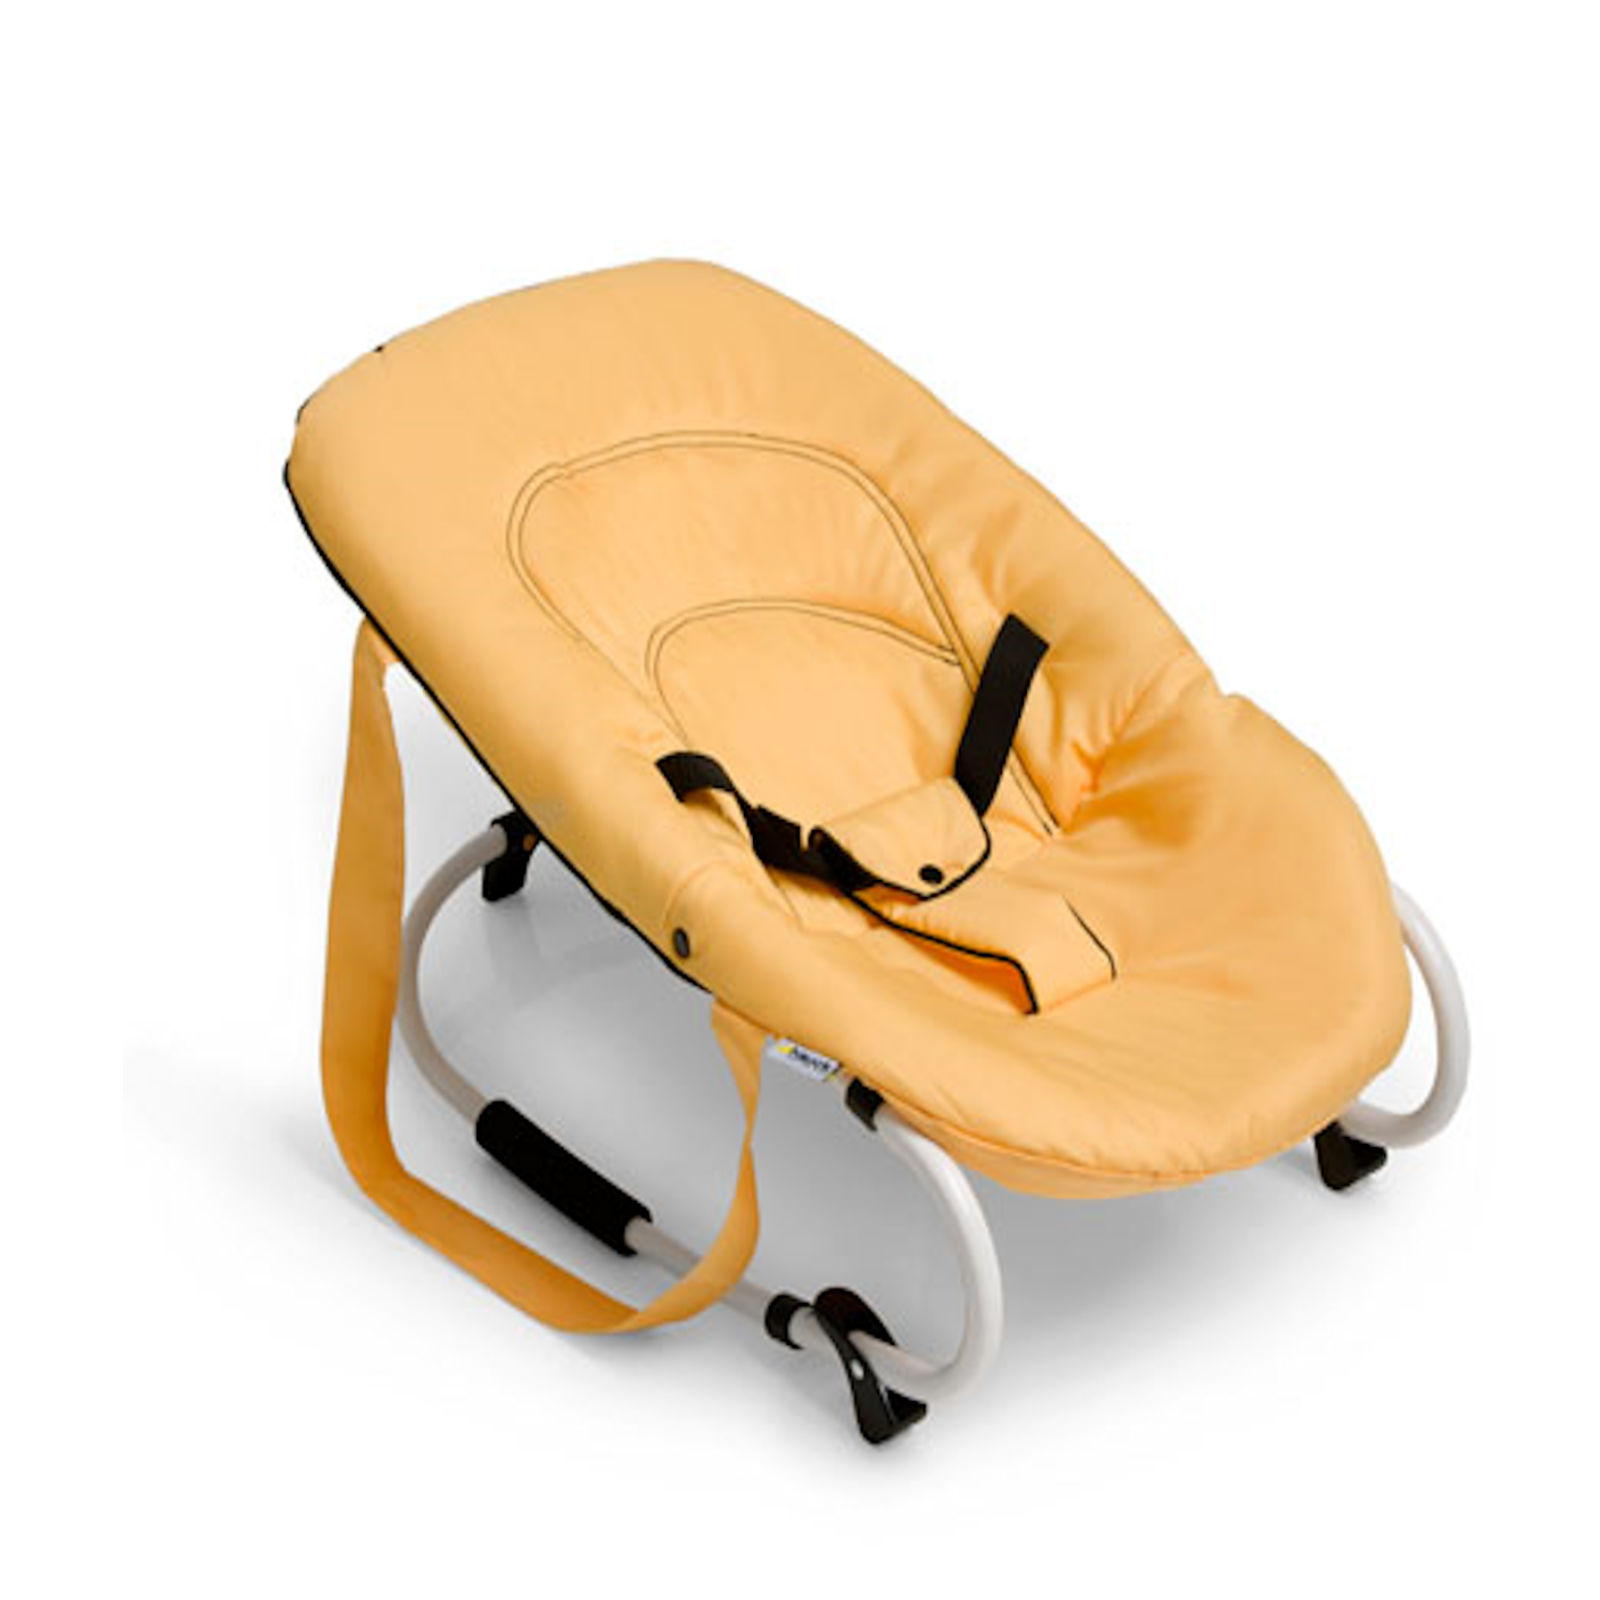 Banana Rocker Chair Details About New Hauck Banana Rocky Deluxe Baby Bouncer Rocker Chair From Birth